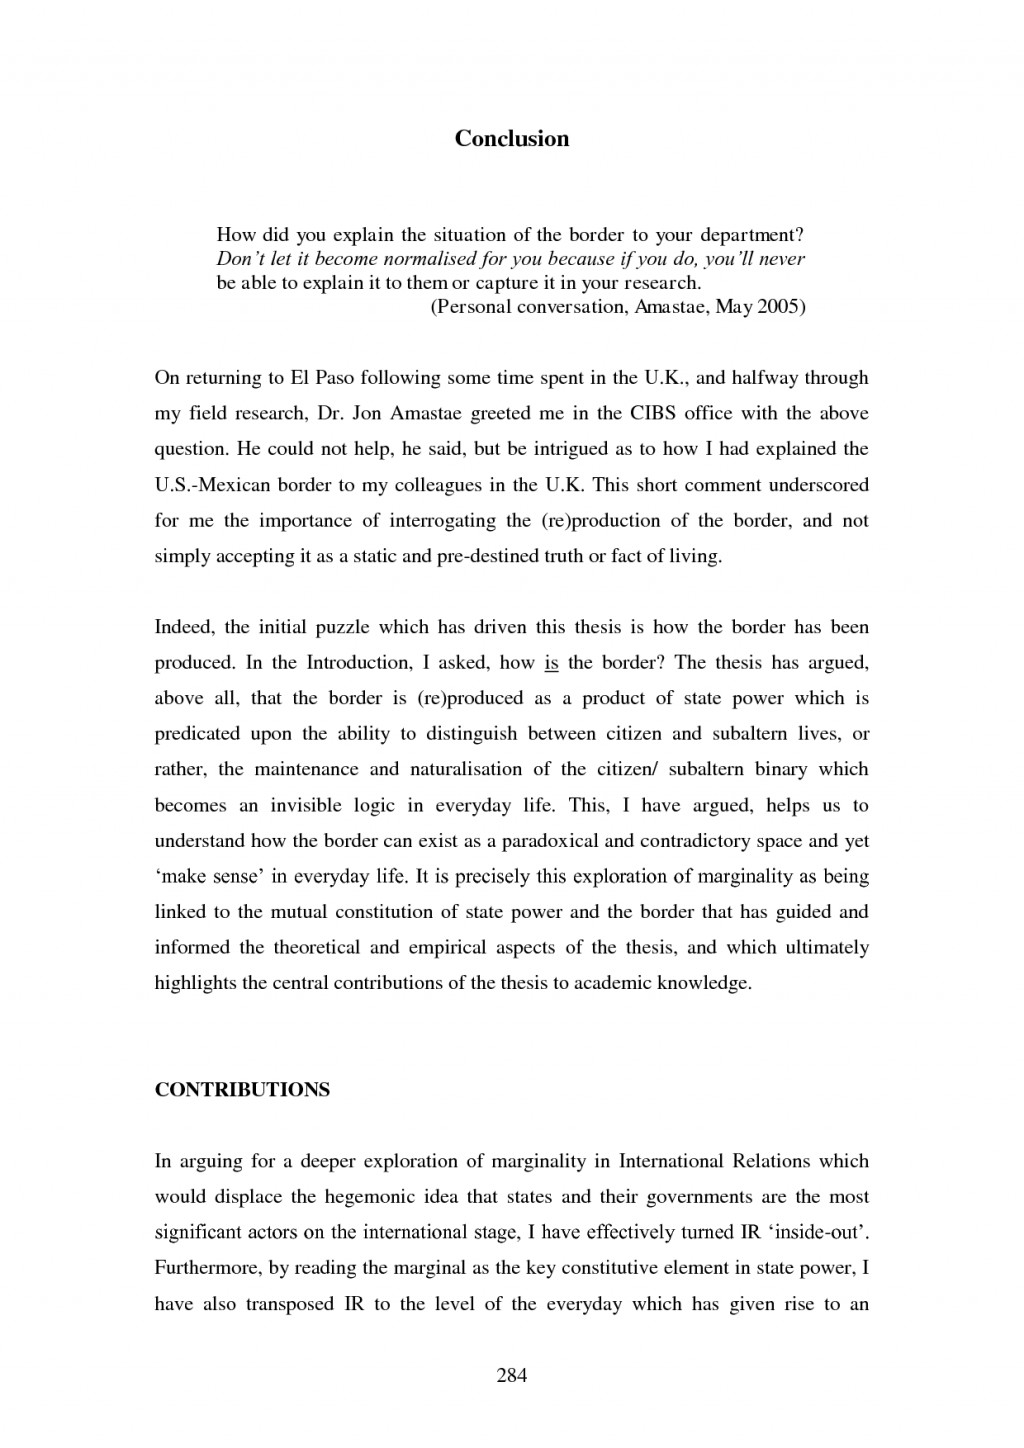 003 Research Paper Pdf Top On Cyber Security 2018 Na Tagalog Scientific Format Large